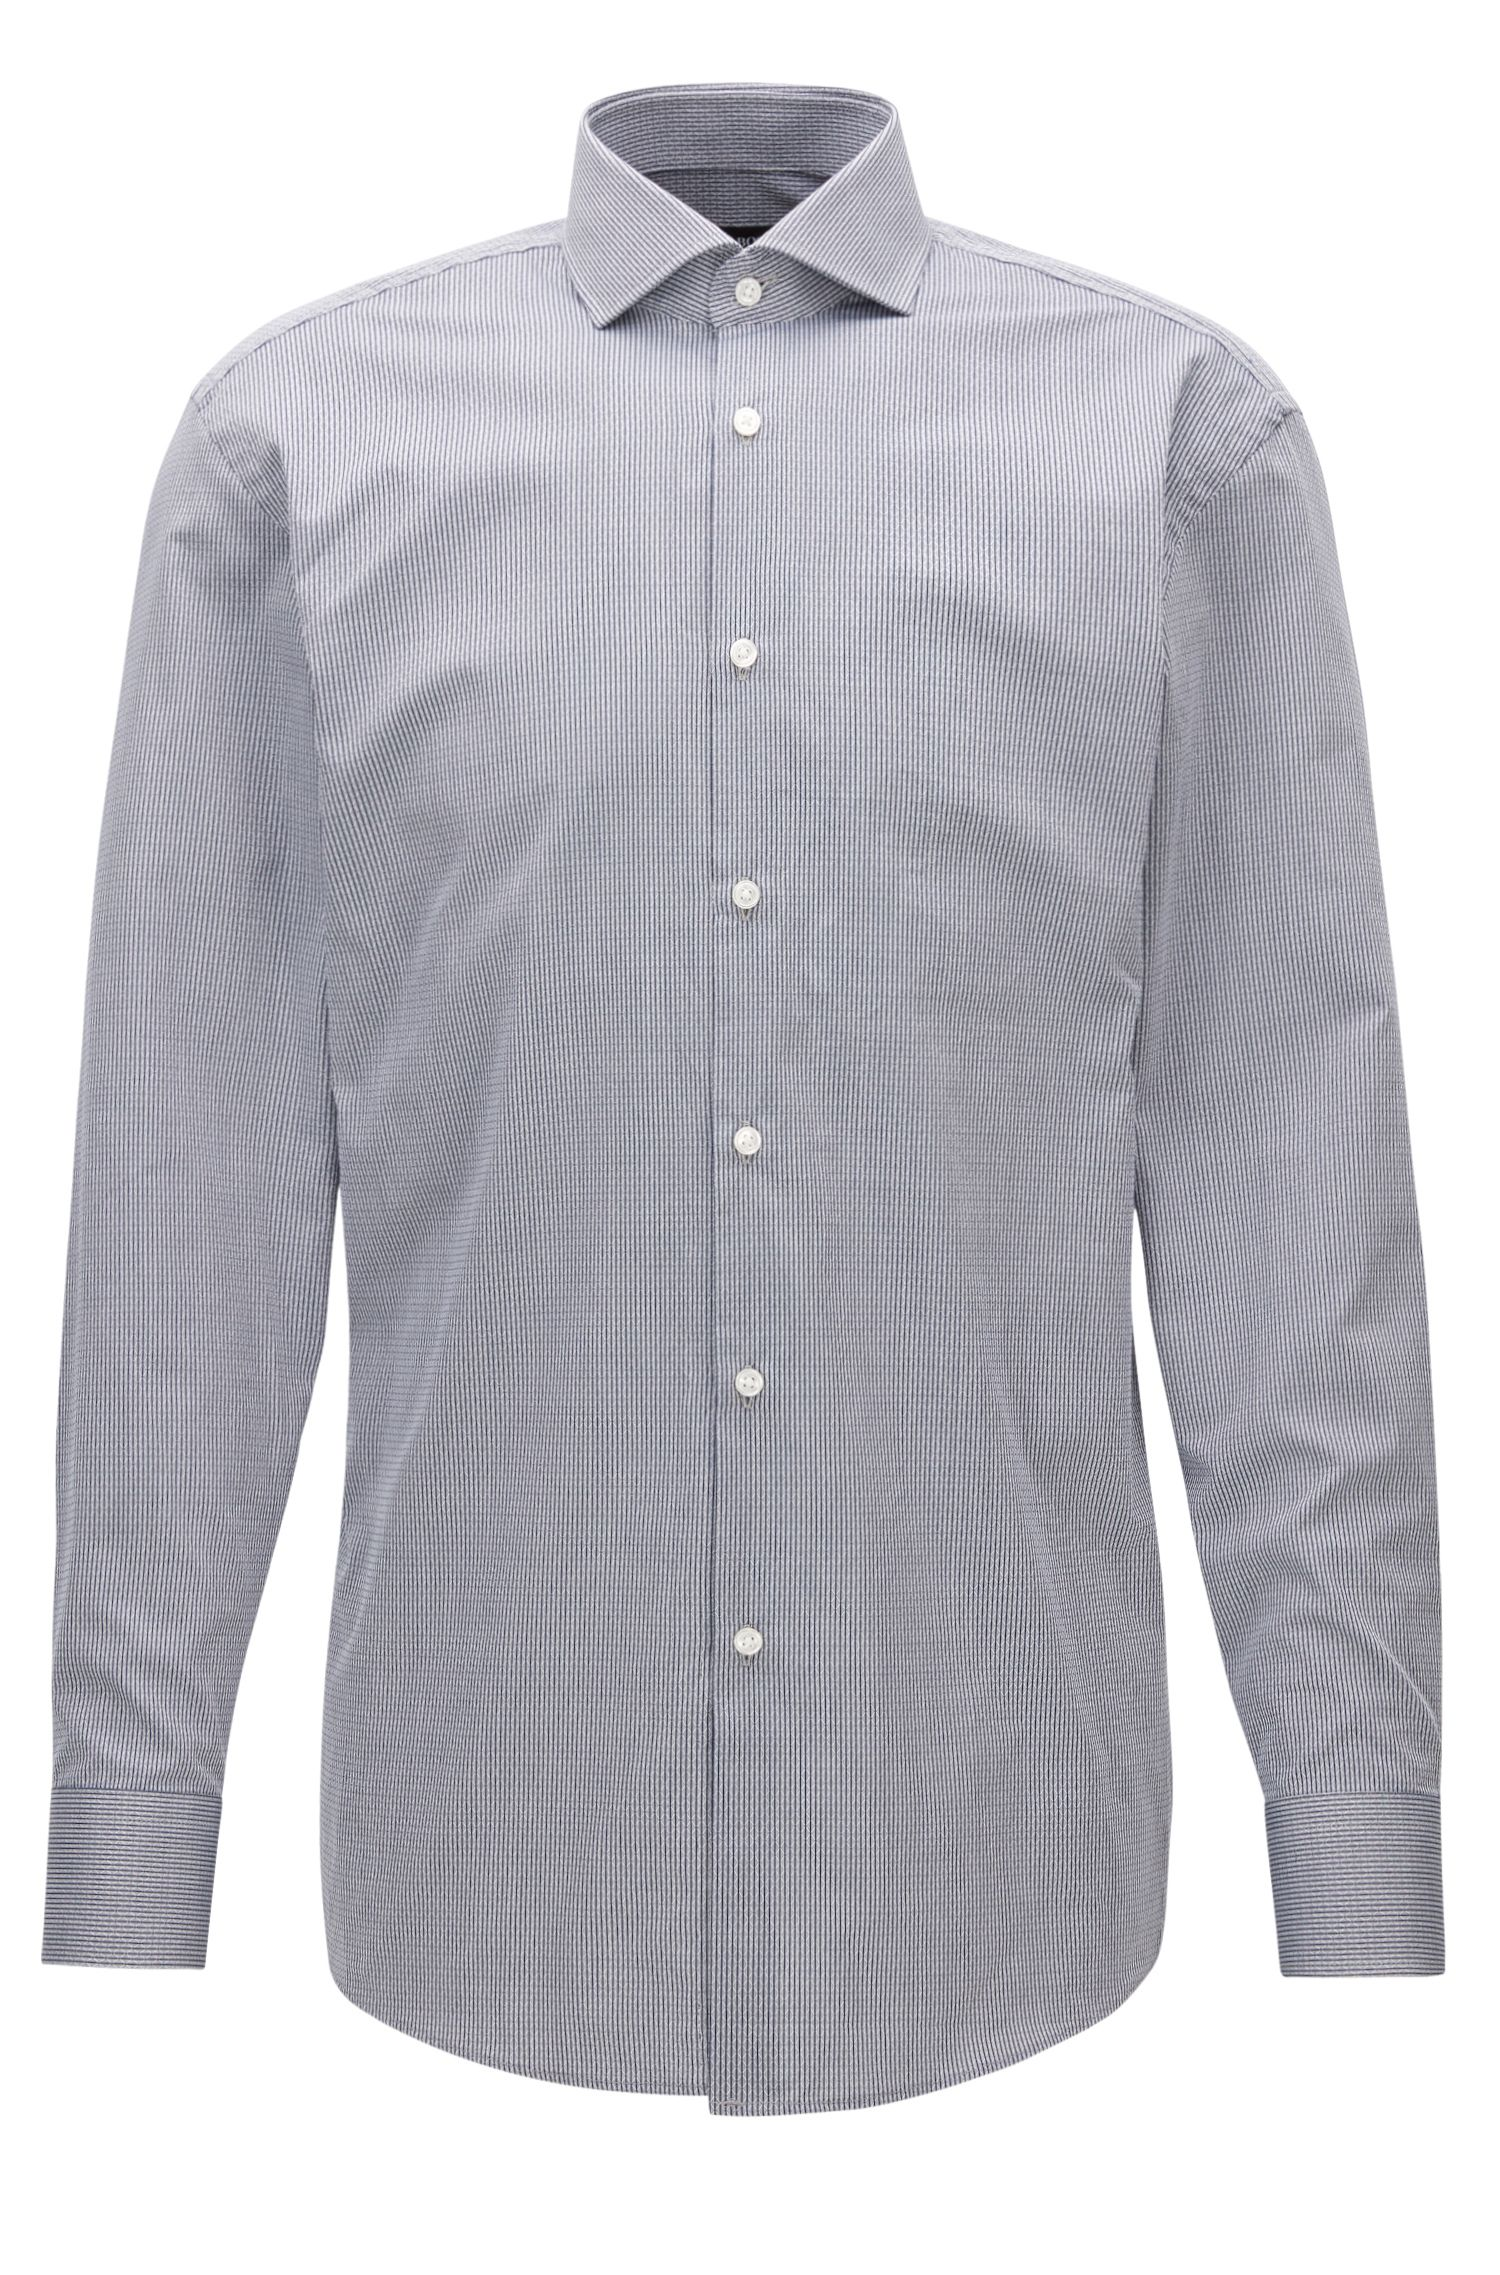 Pinstripe Patterned Cotton Dress Shirt, Sharp Fit | Mark US